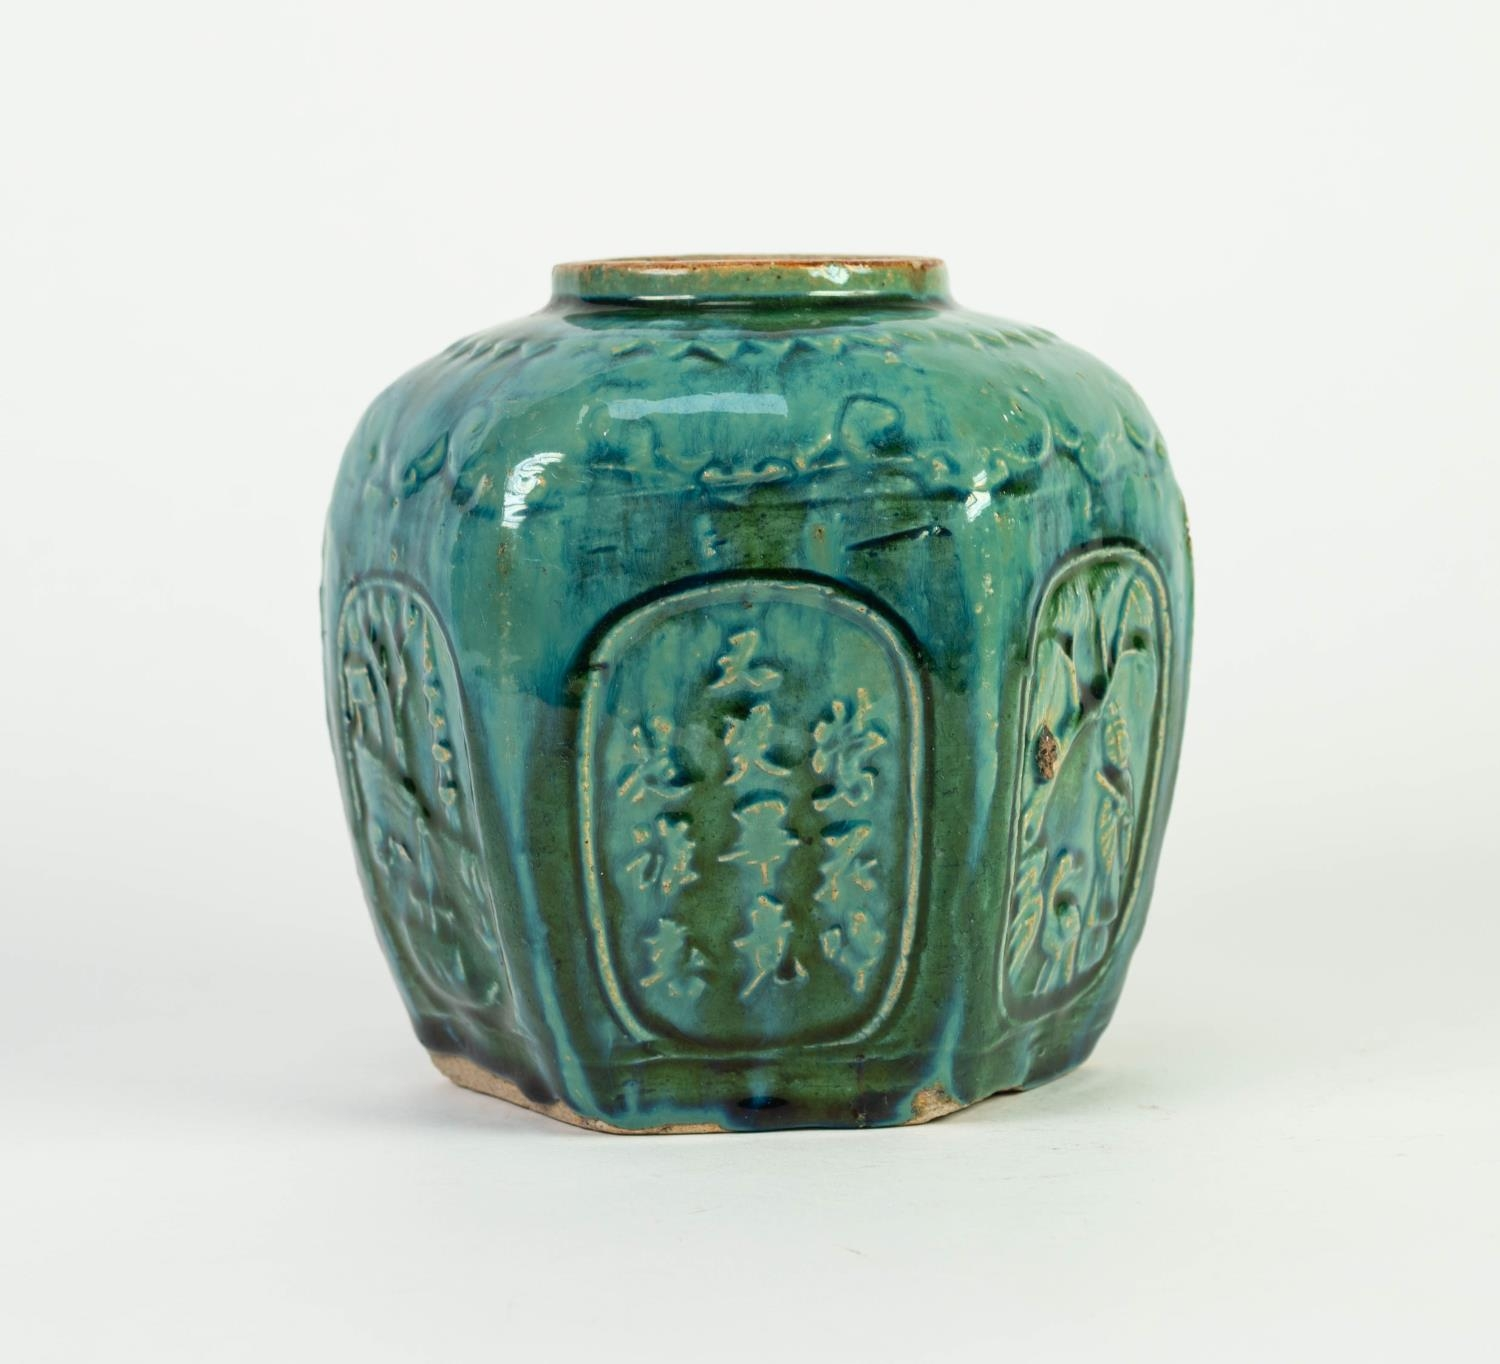 CHINESE PROVINCIAL WARE MOULDED POTTERY GINGER JAR, of hexagonal form, decorated with panels - Image 2 of 5